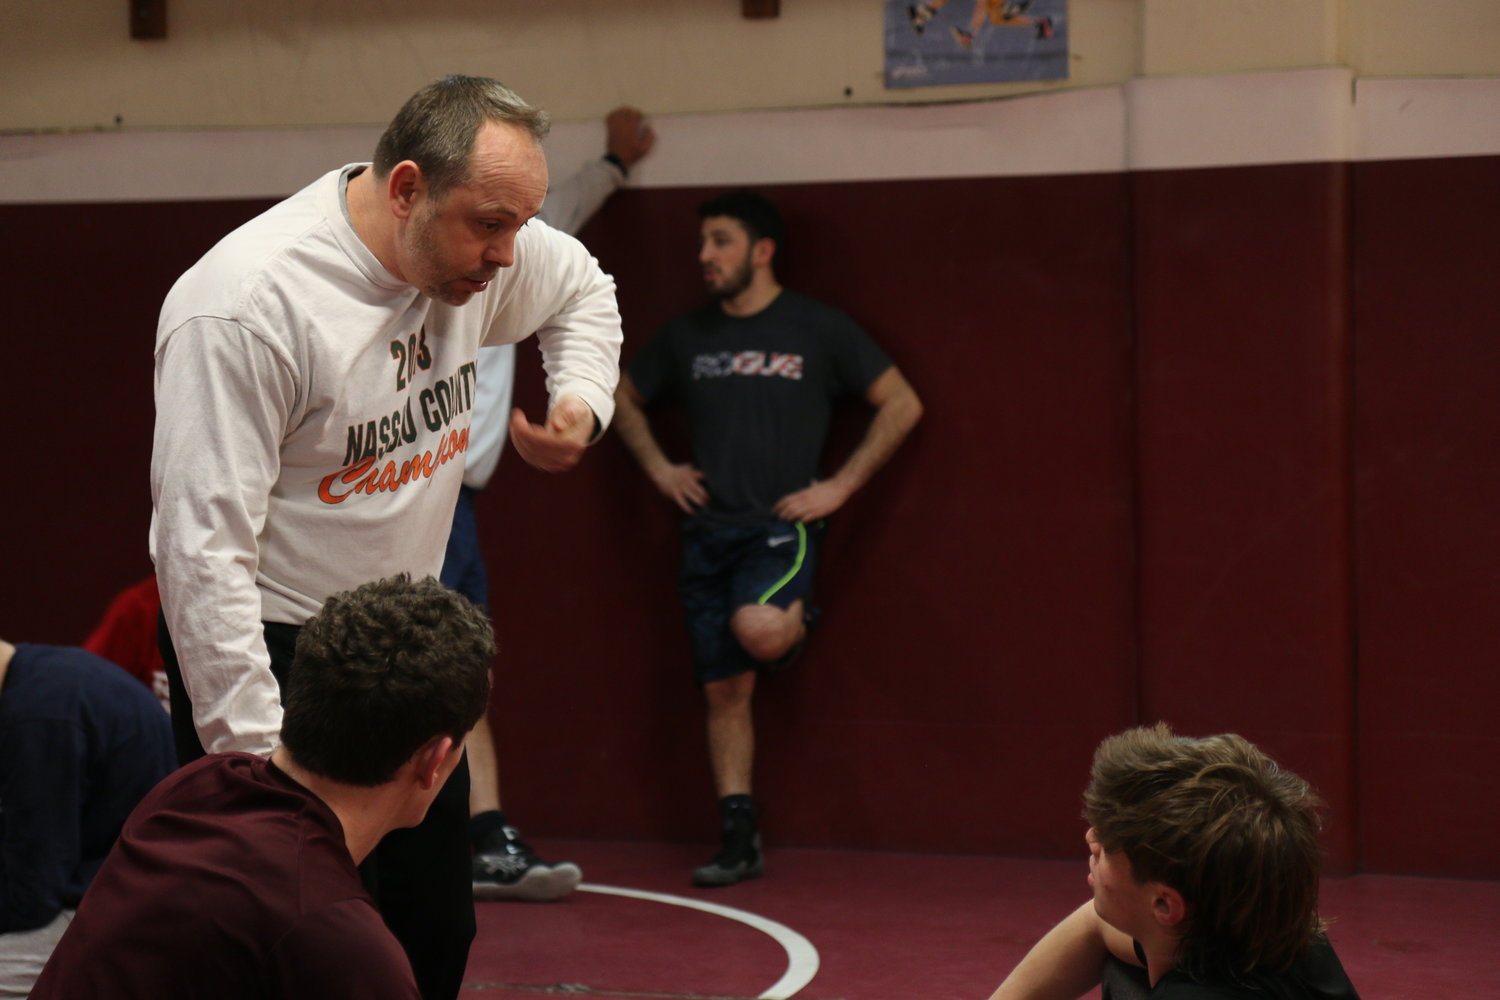 North Shore High School wrestling coach Michael Emmert offered some skillful advice to his athletes.